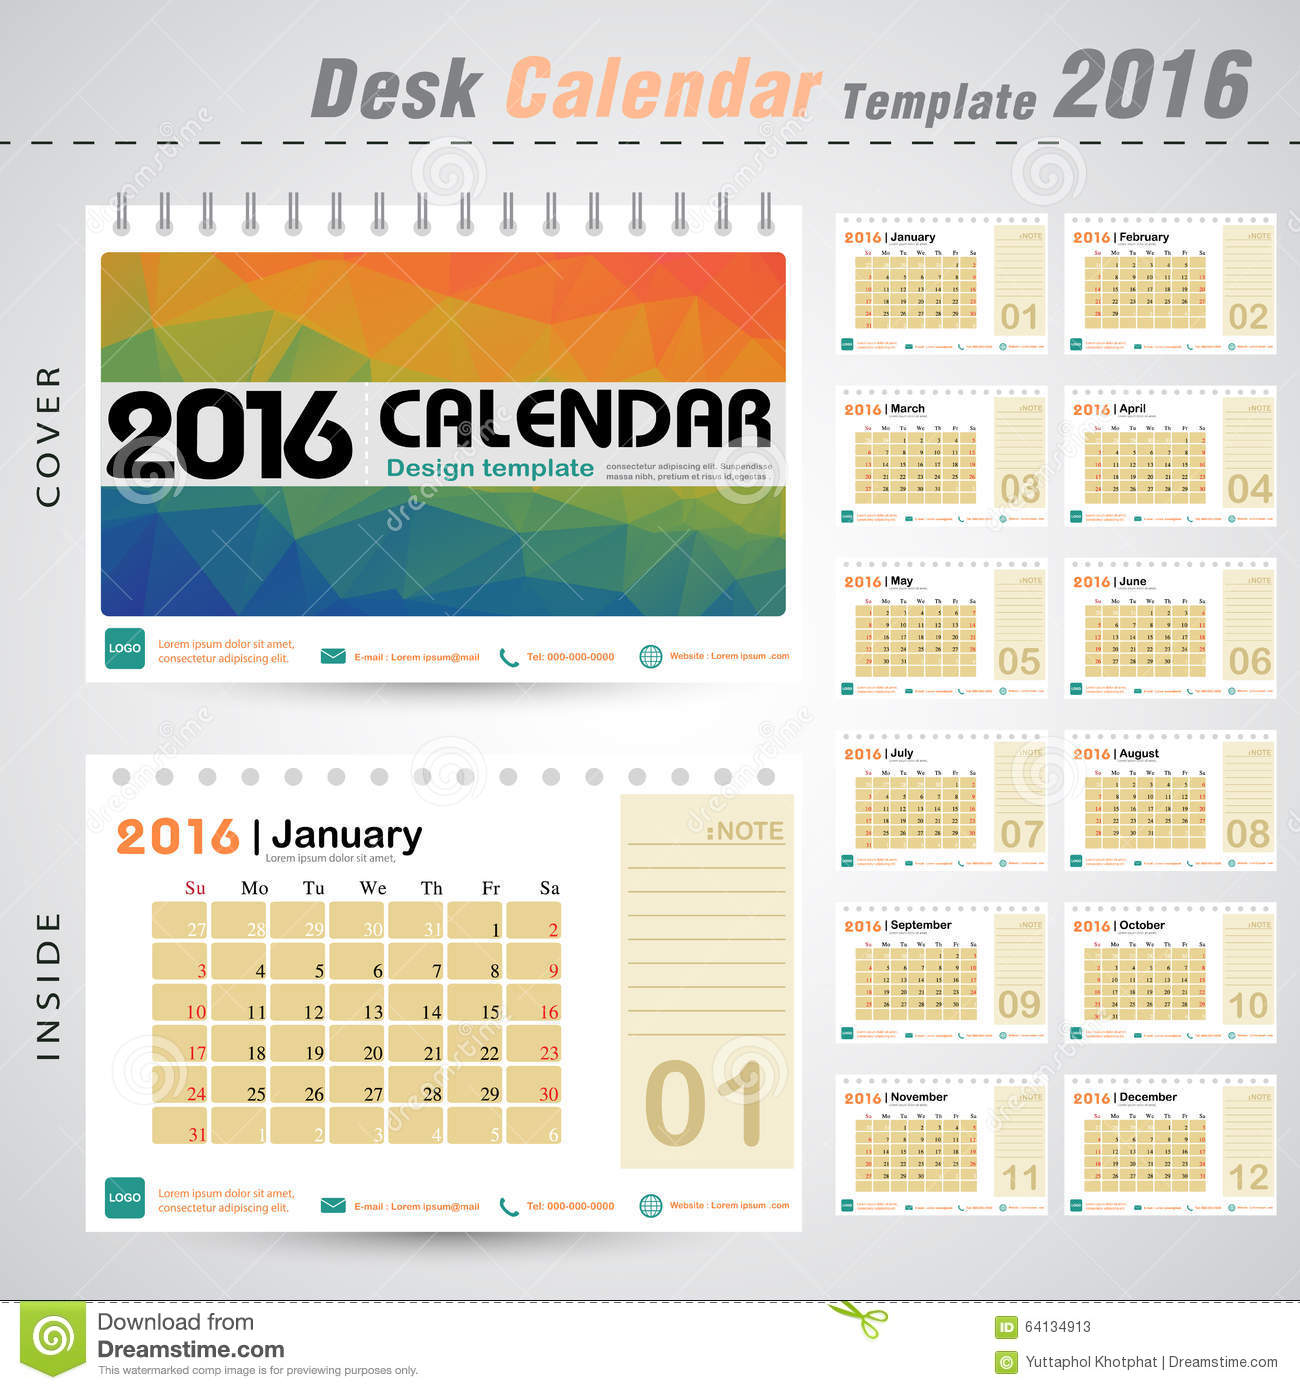 Cover Calendar Design Vector : Desk calendar vector design template with colorful